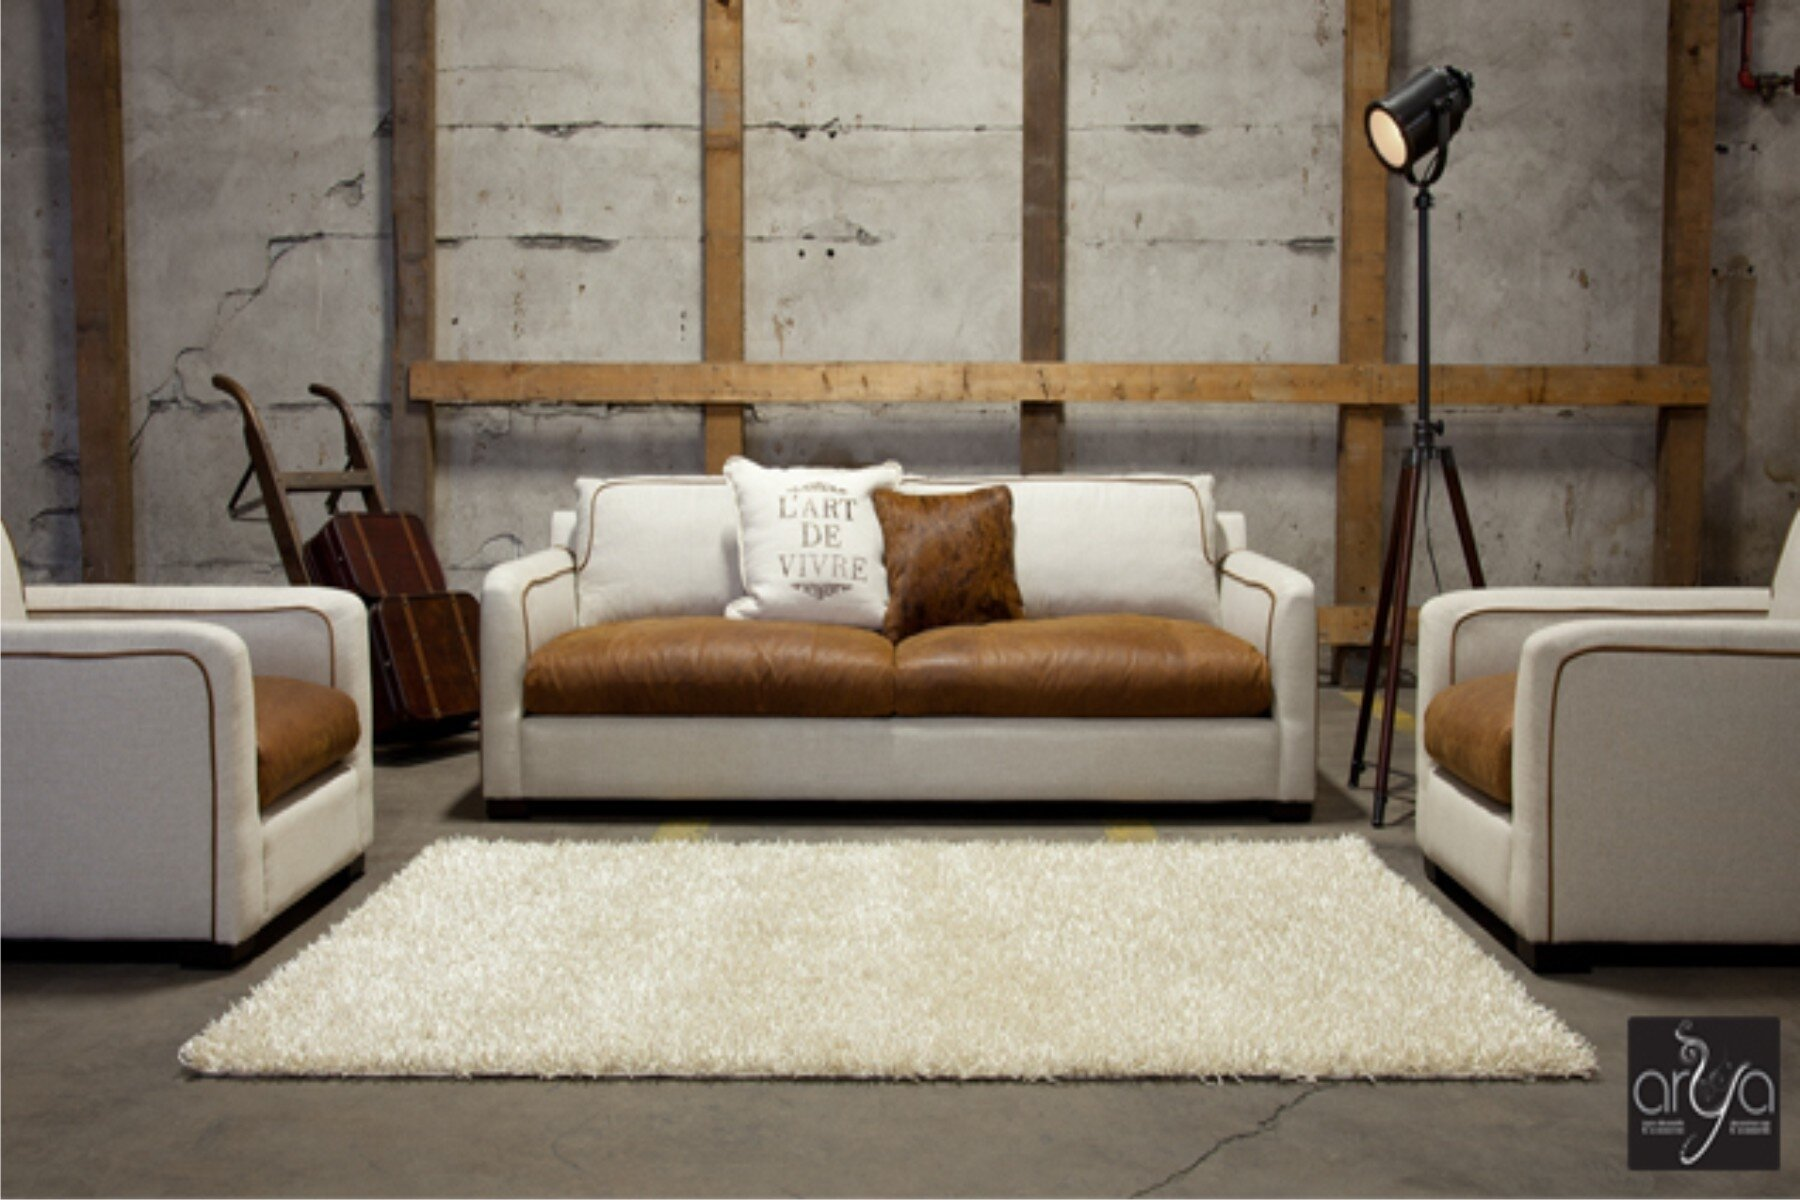 craigslist tulsa sofa 4 seat size couches on for sale